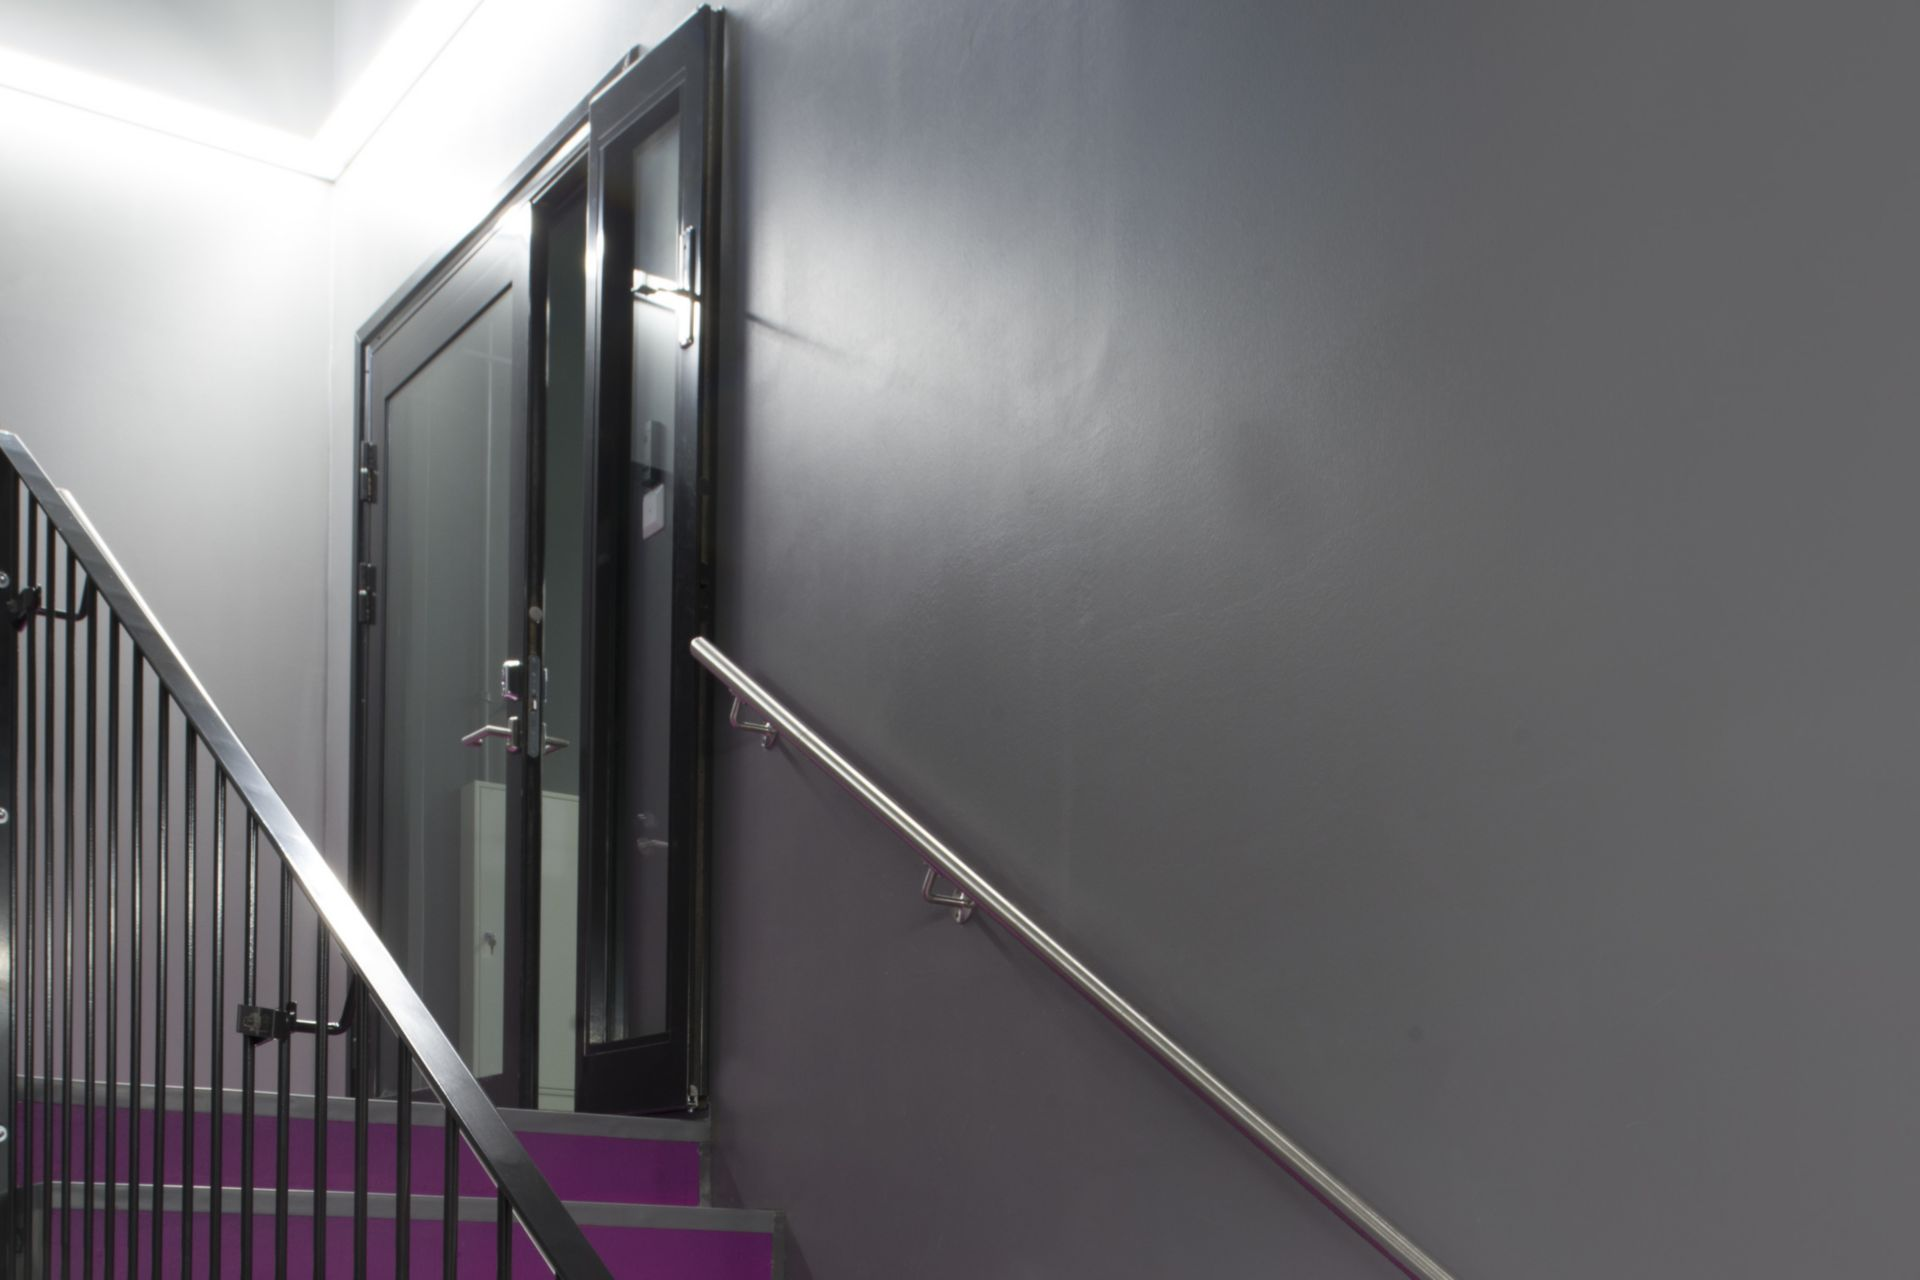 Decorative purple fushia stair floor grey walls at Kokkola campus hall school in Finland with Sika ComfortFloor system